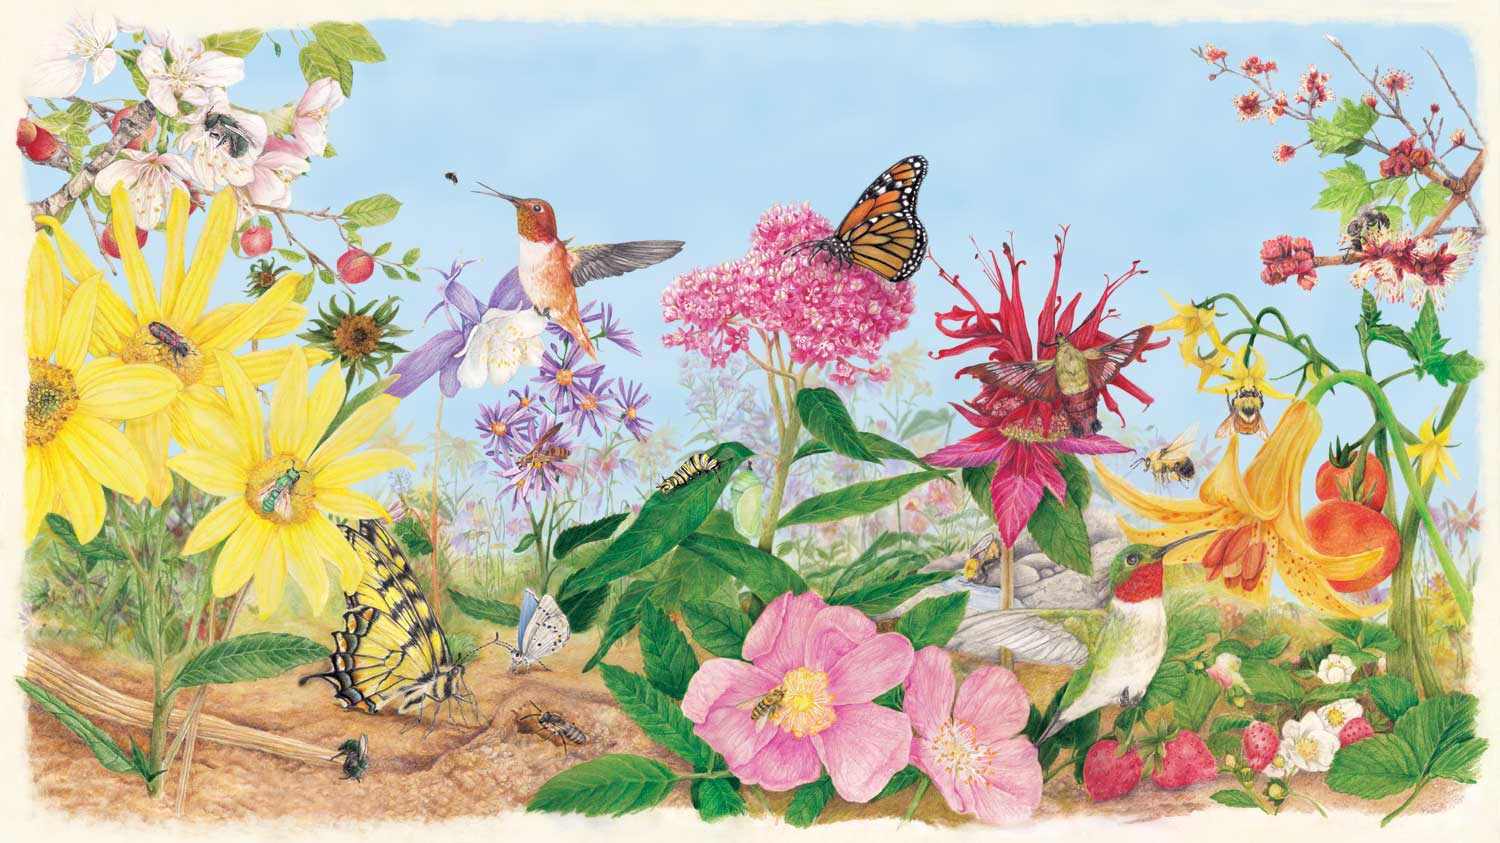 Illustration of flowers, insects and birds